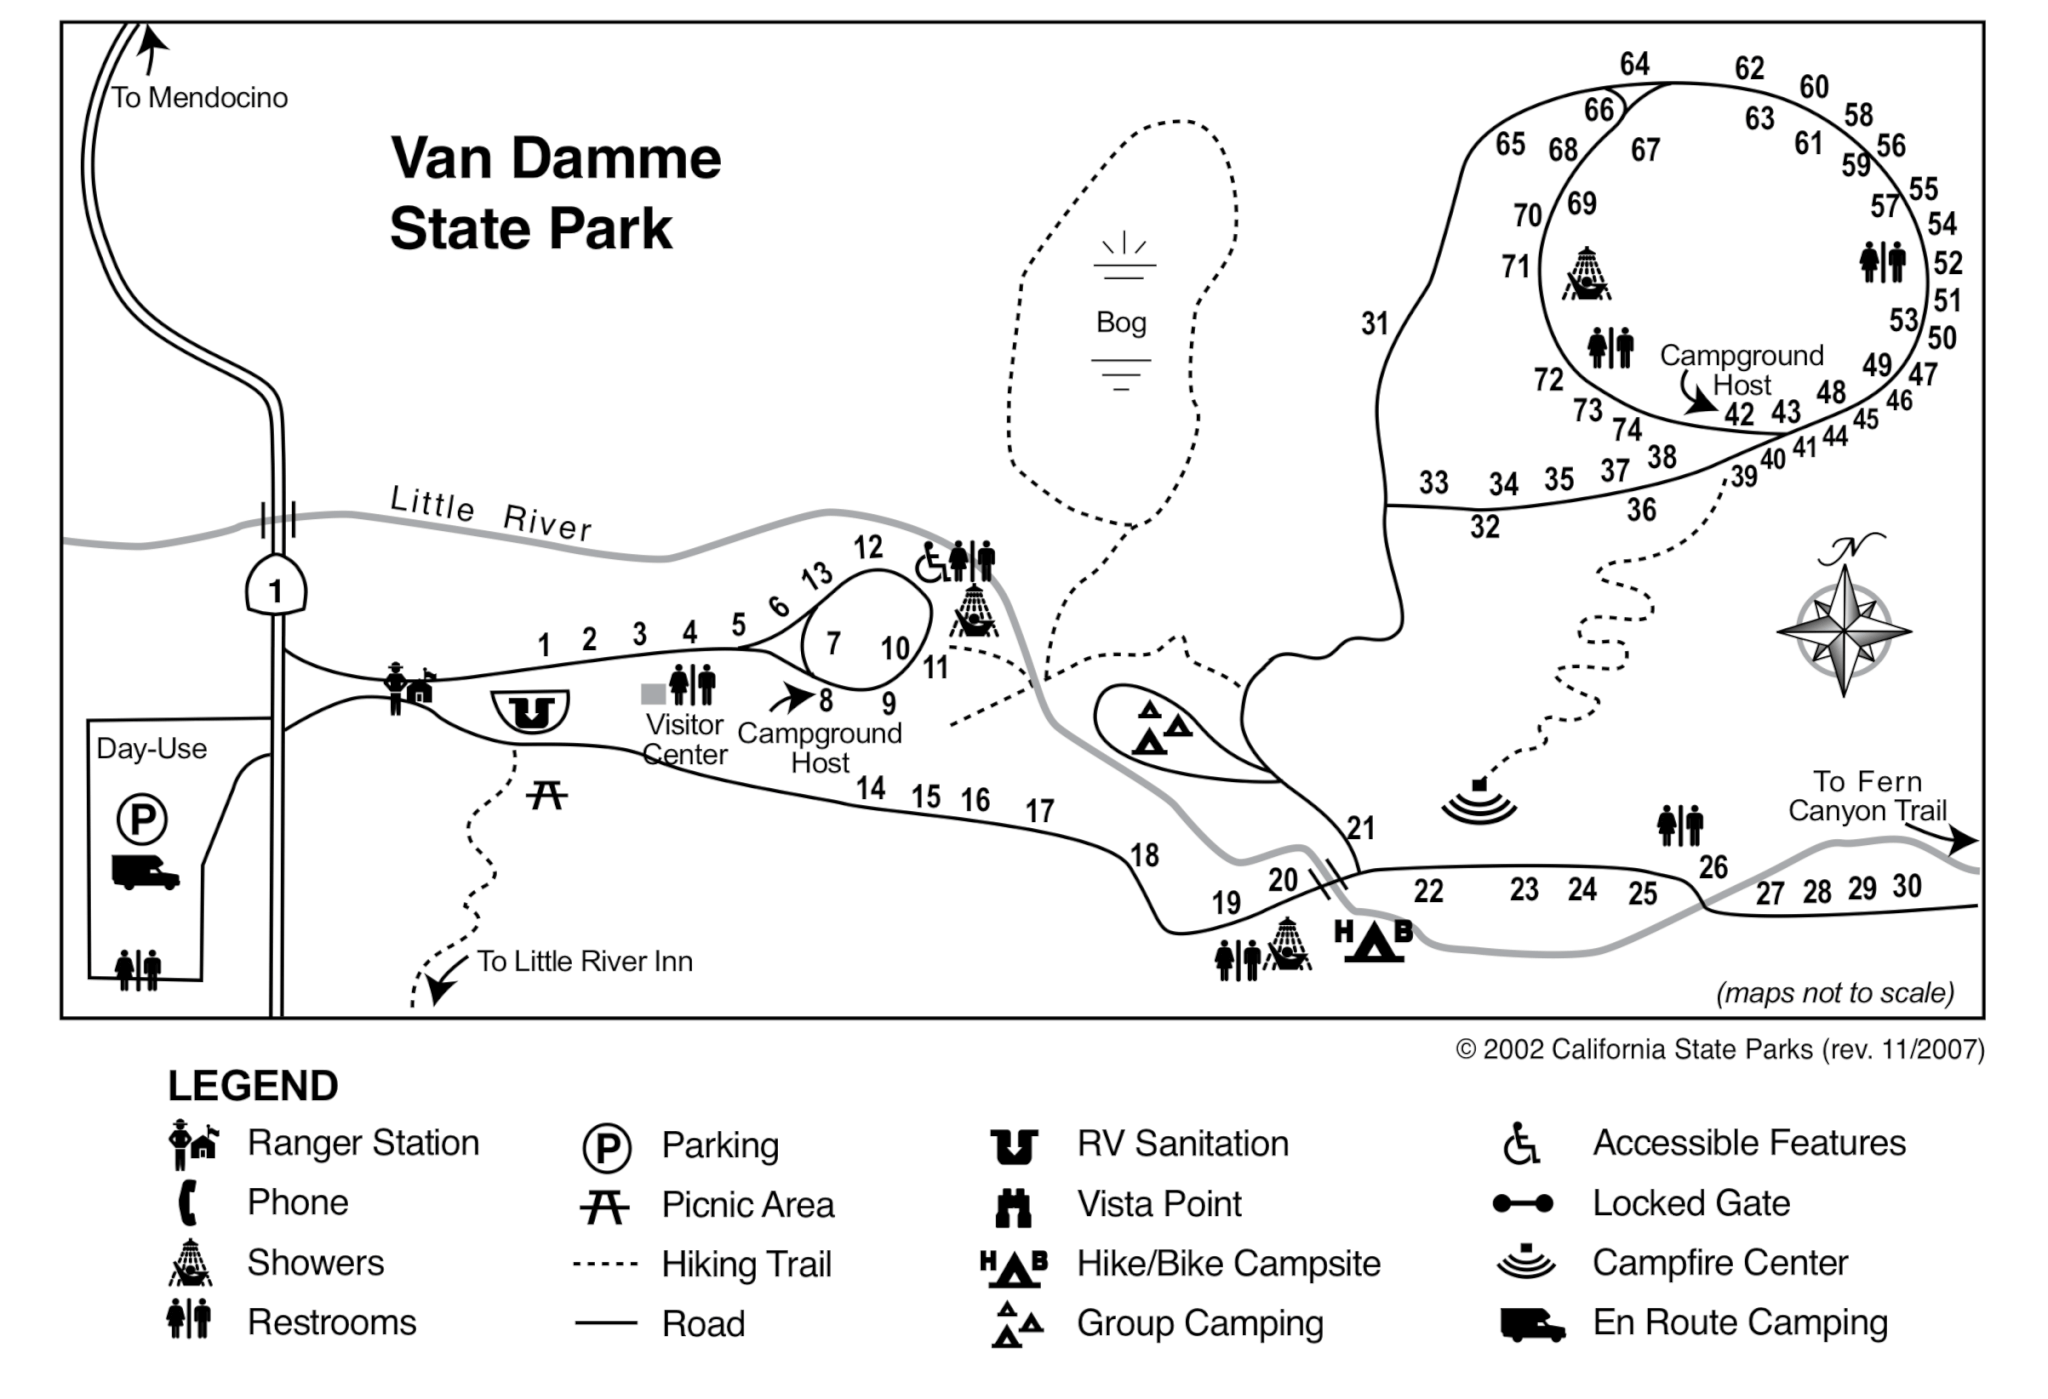 Van Damme State Park Campsite Photos And Camping Information